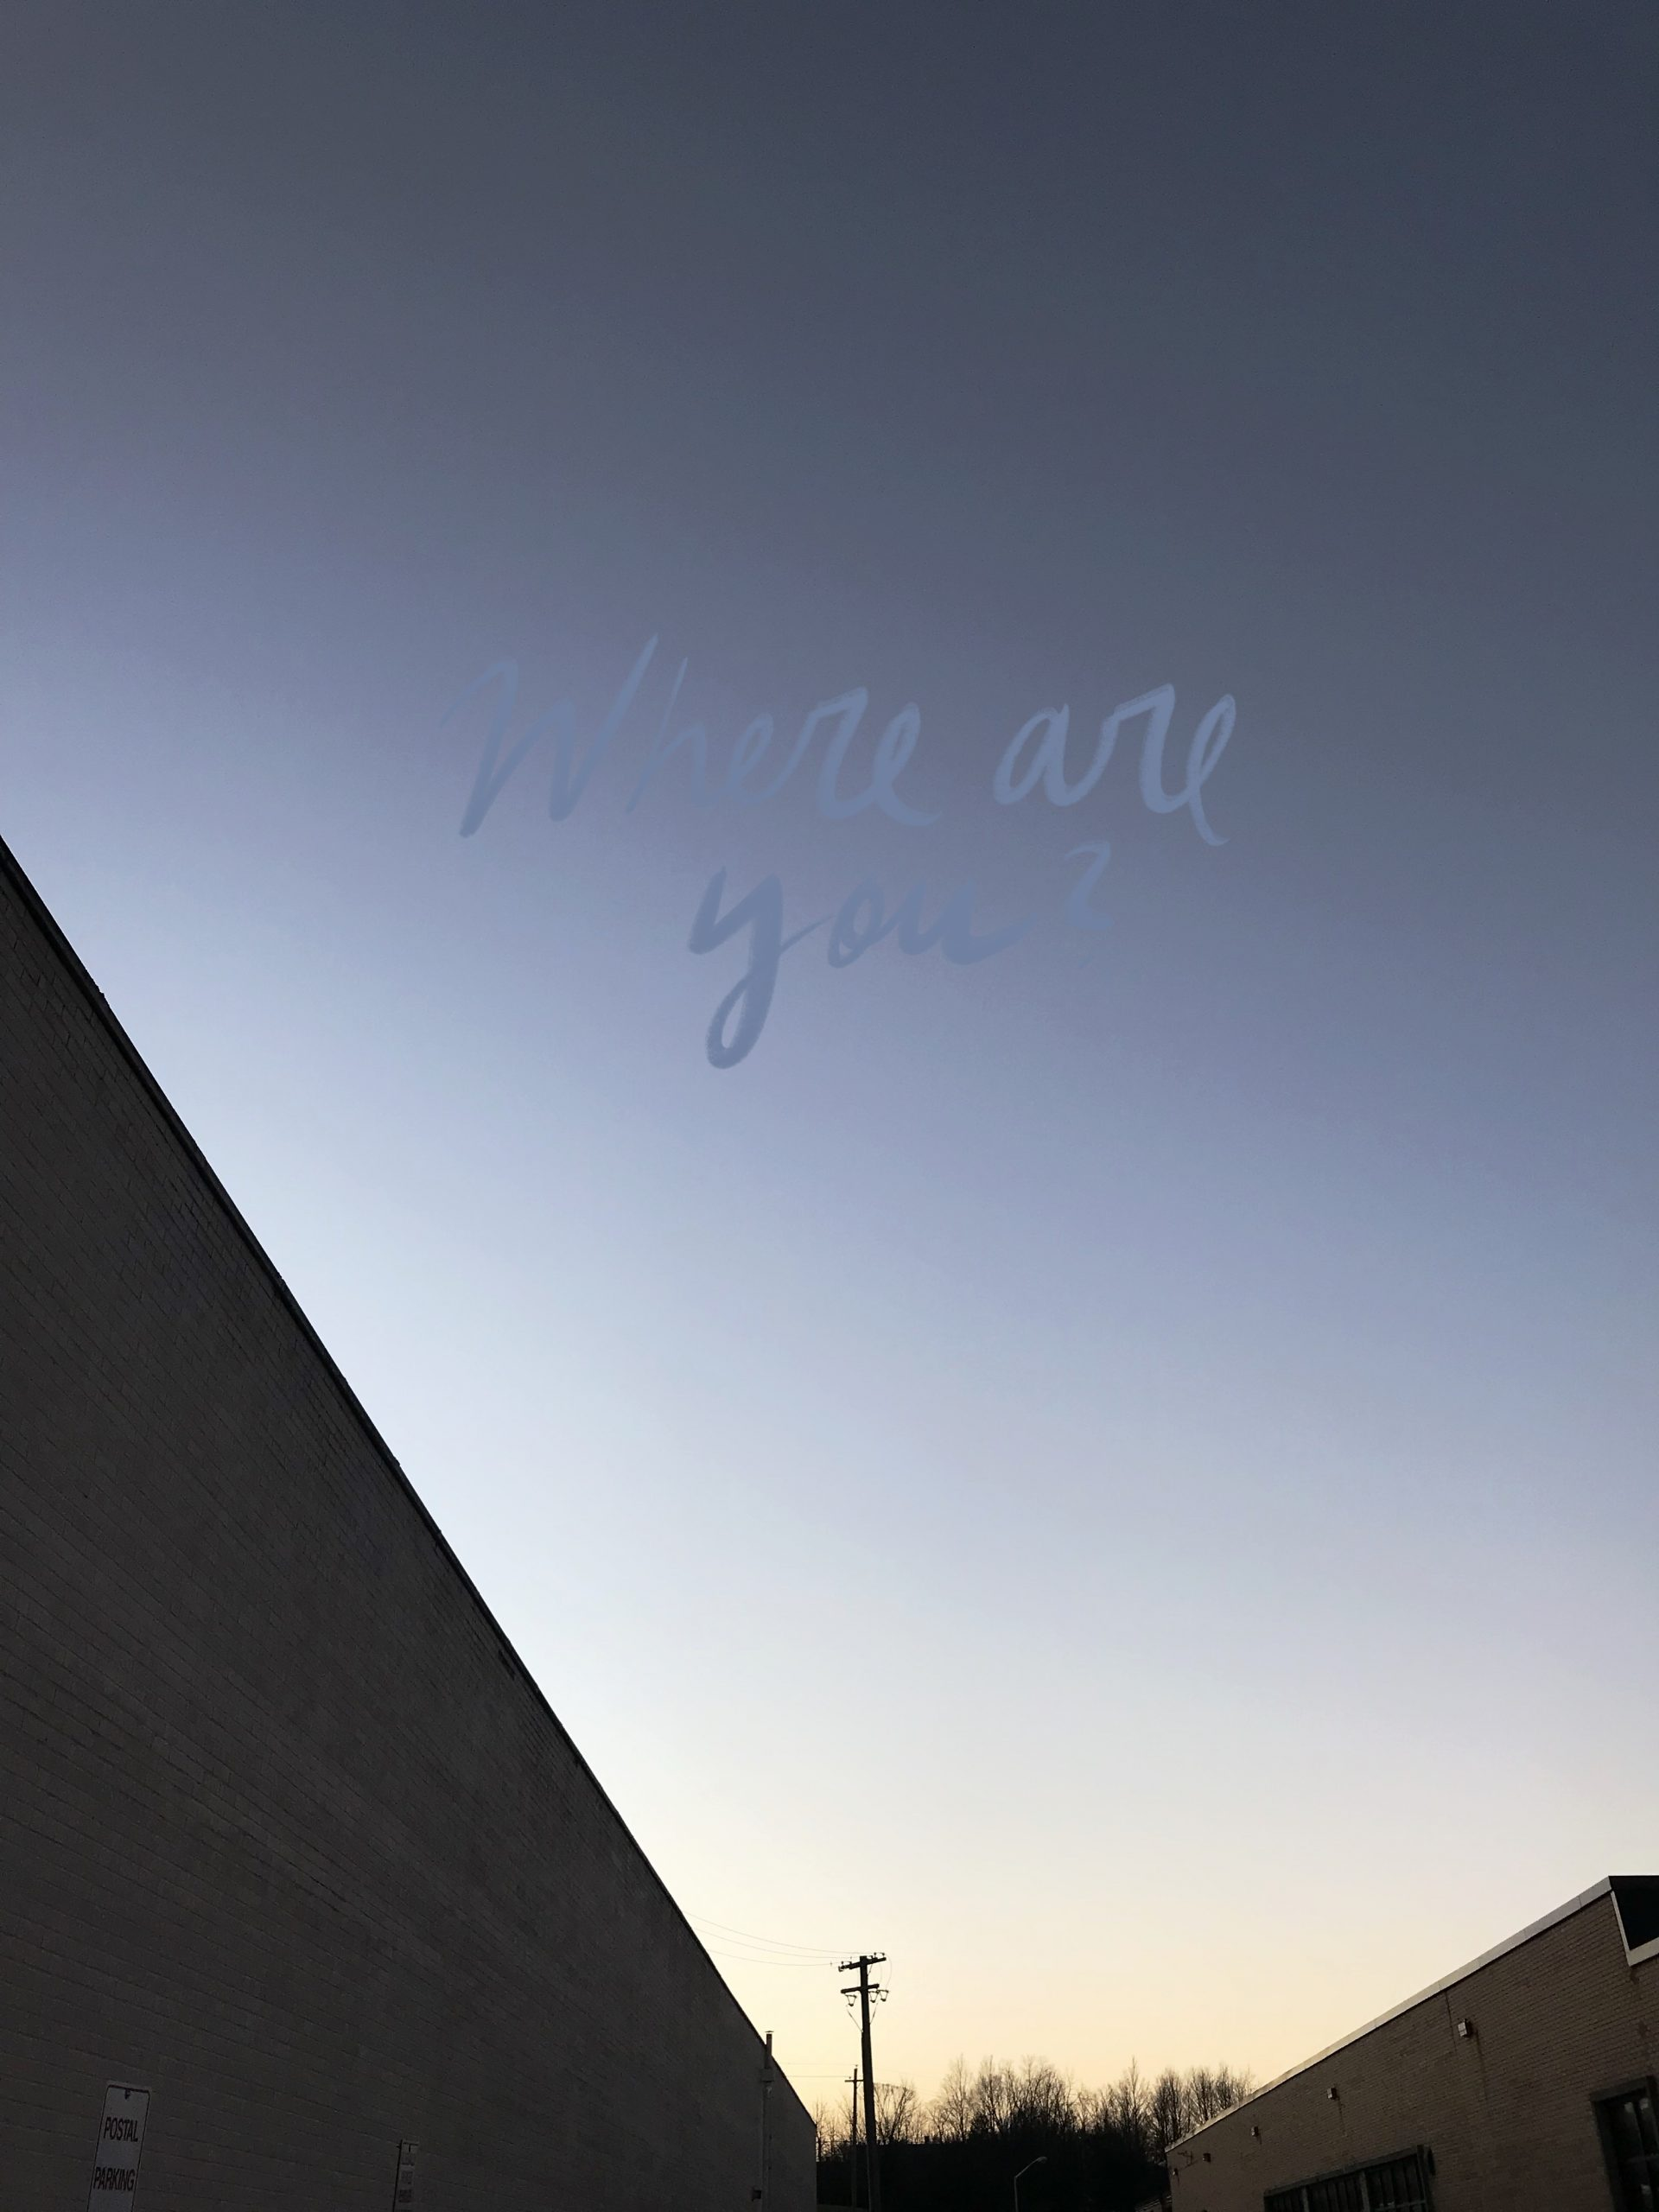 Color digital photograph with handwritten text.